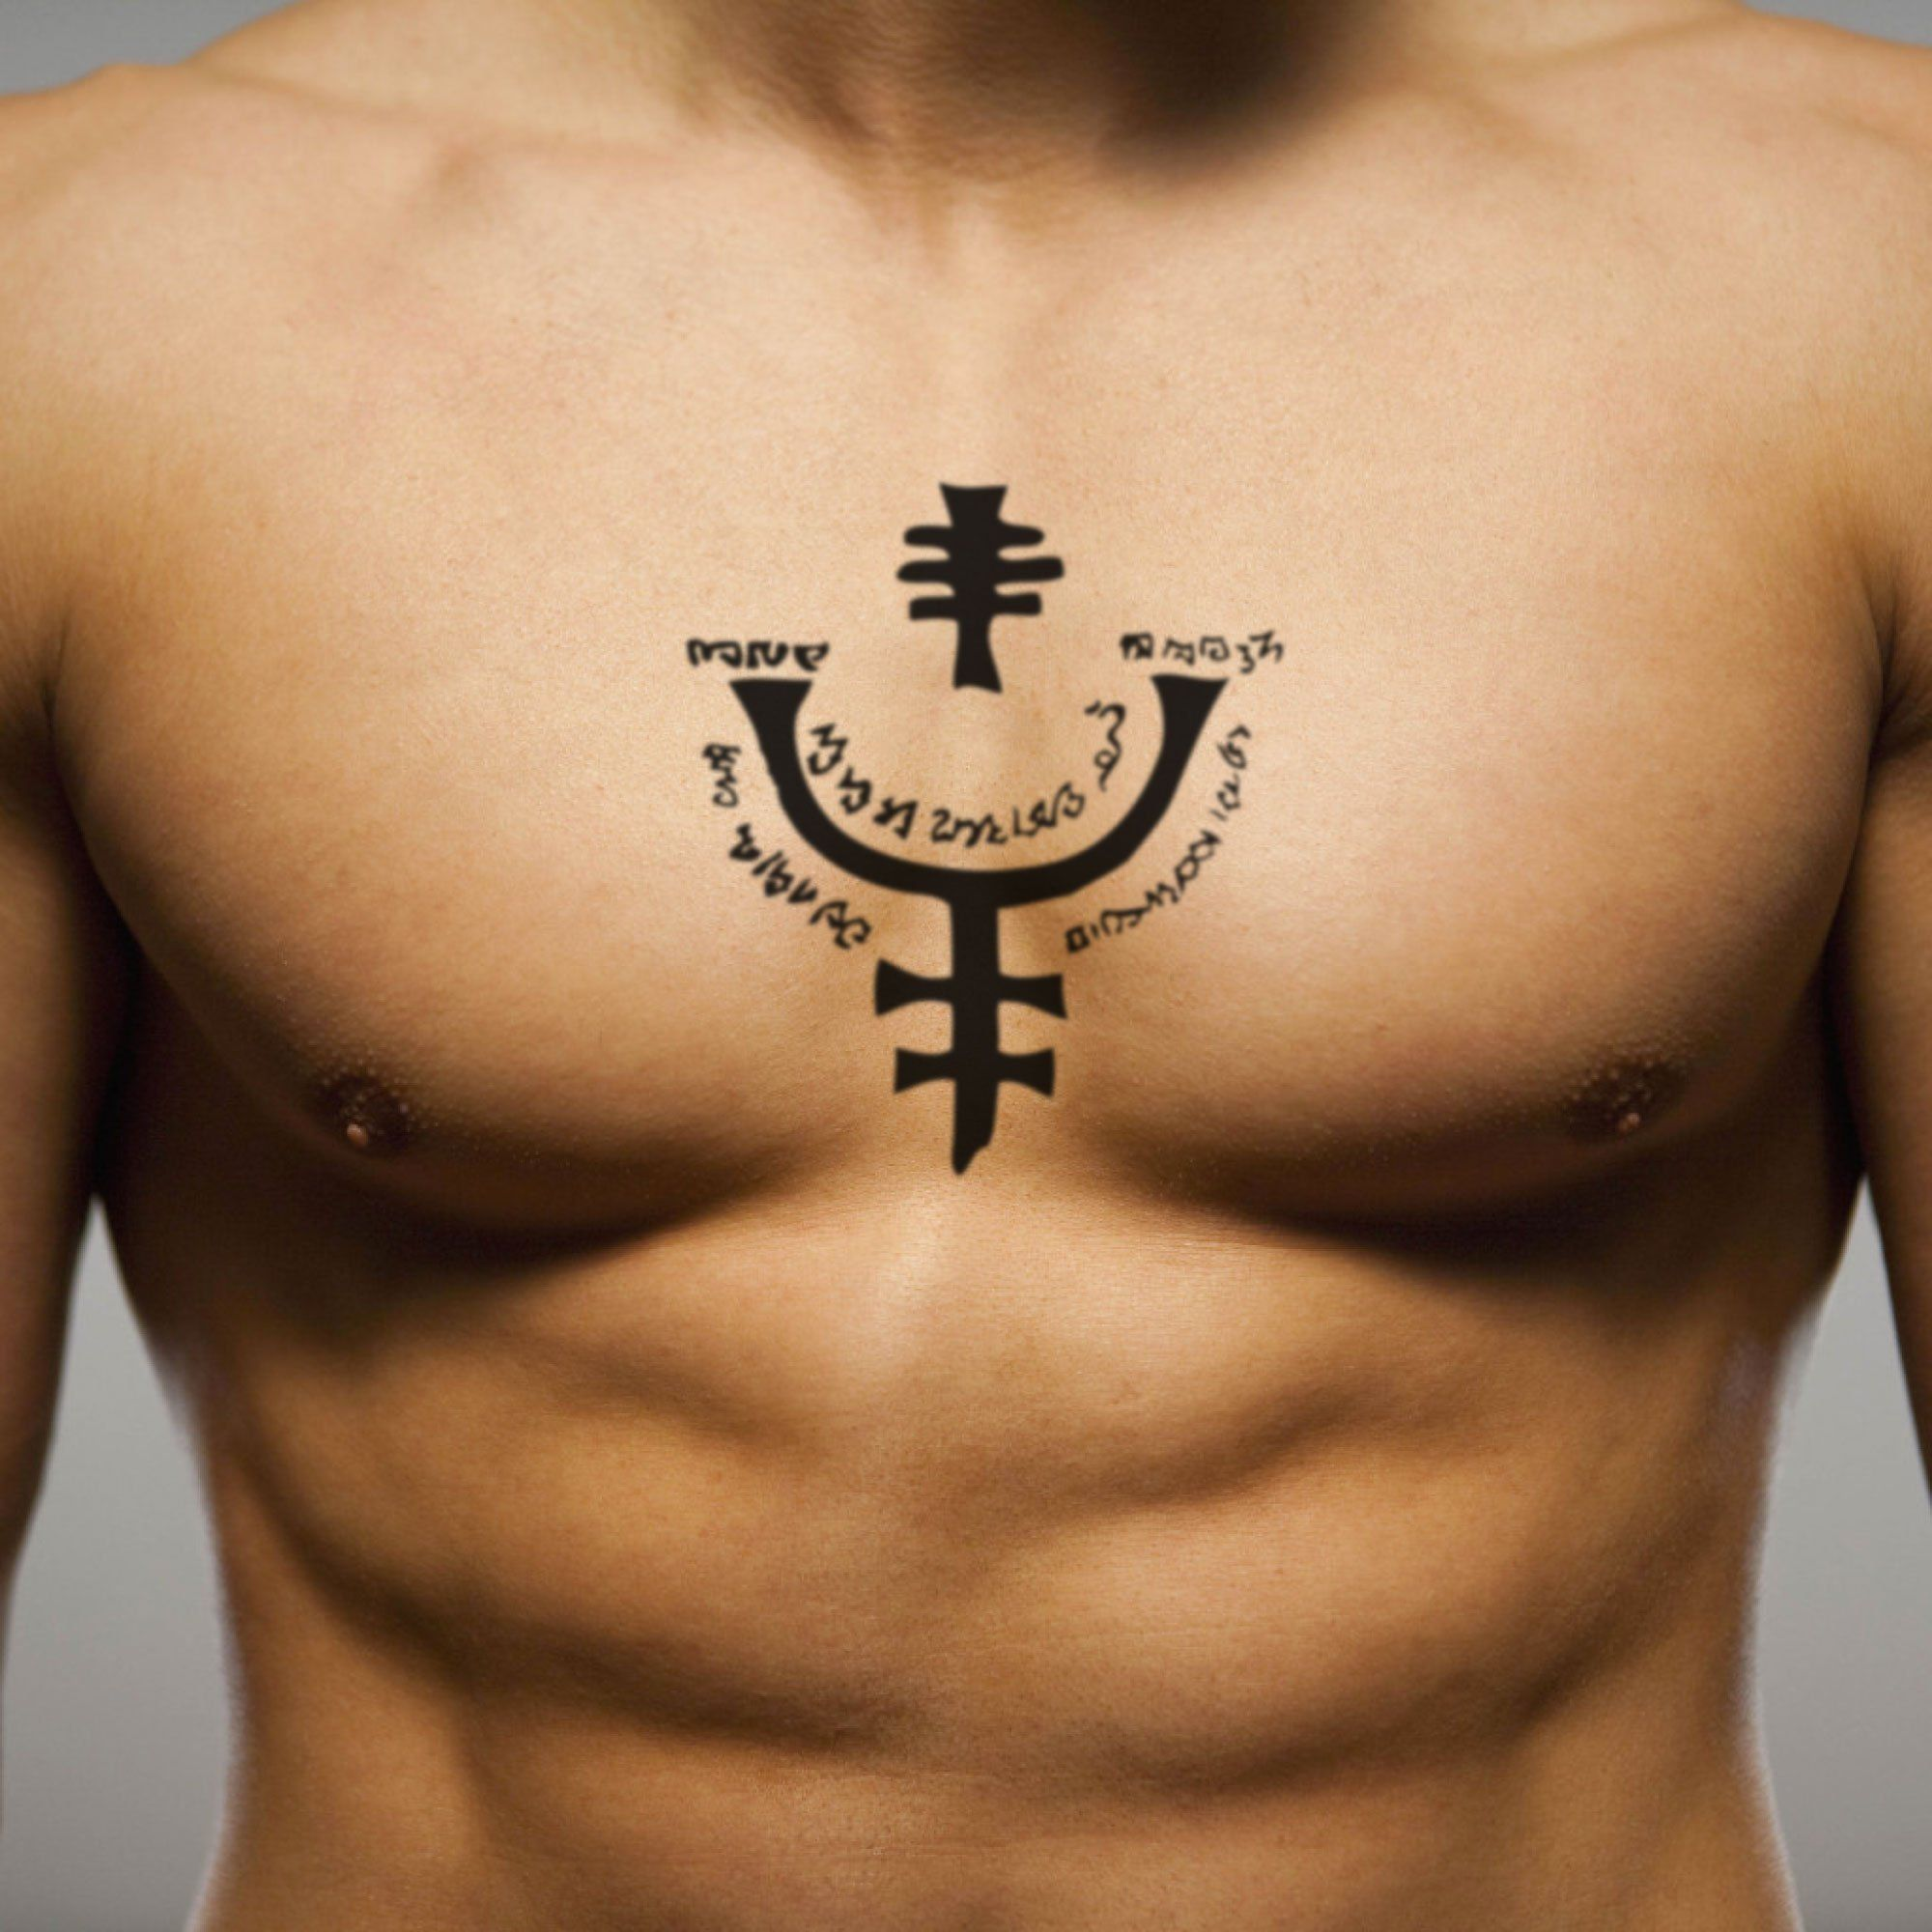 Chest sirius tattoo meaning black 16+ Armband